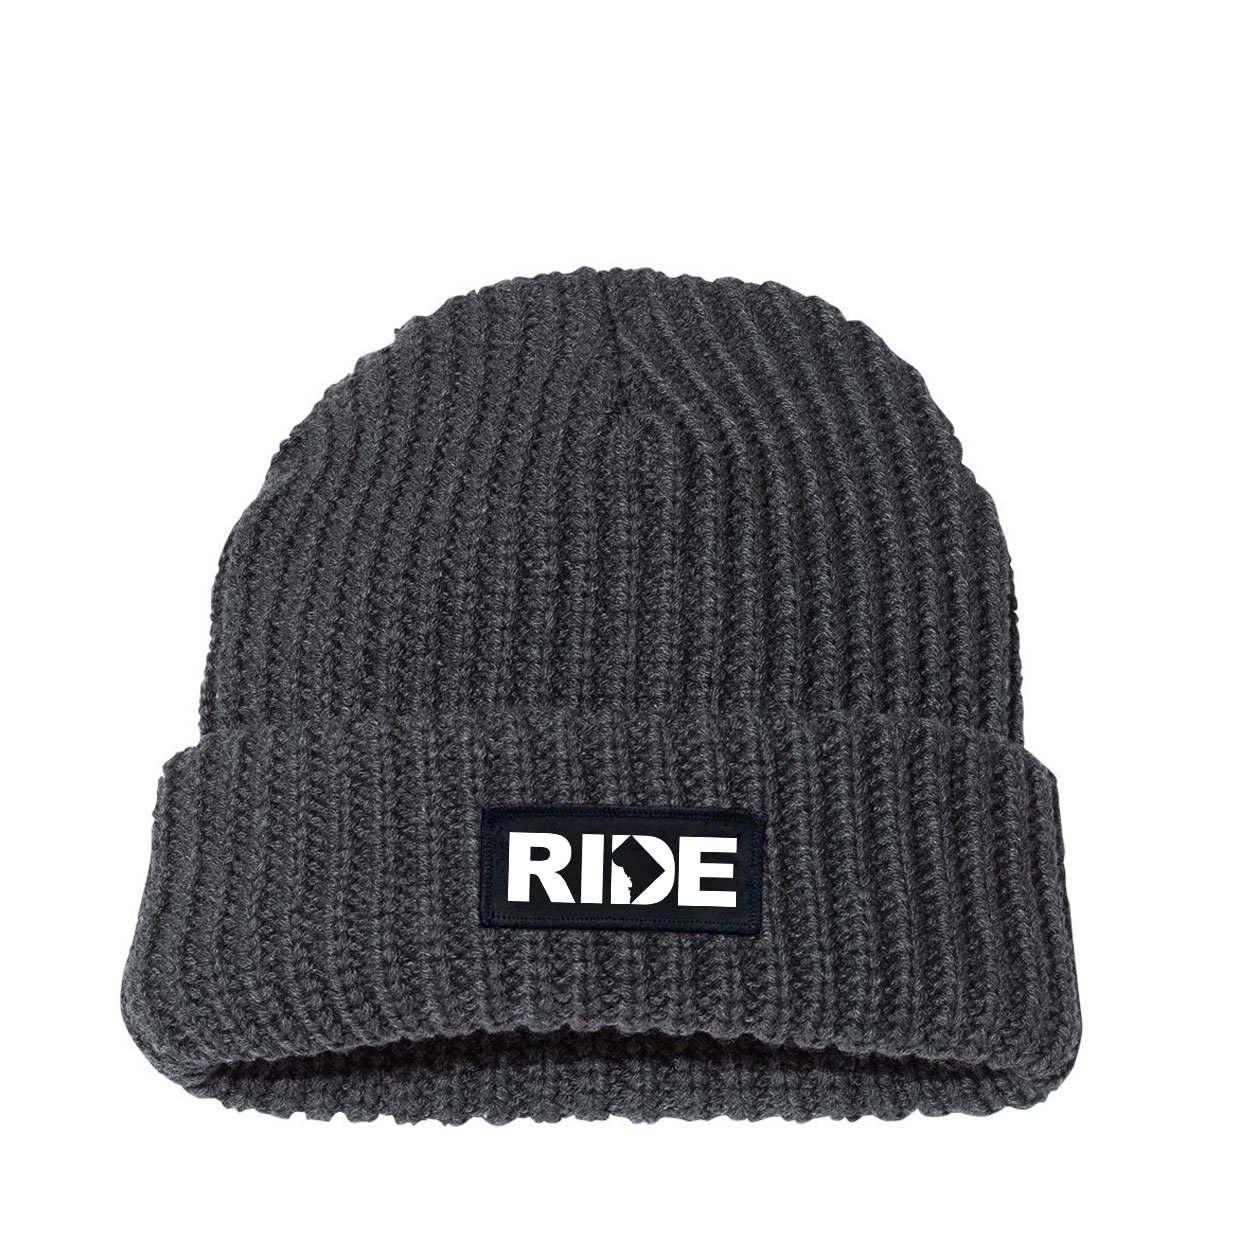 Ride District of Columbia Night Out Woven Patch Roll Up Jumbo Chunky Knit Beanie Charcoal (White Logo)